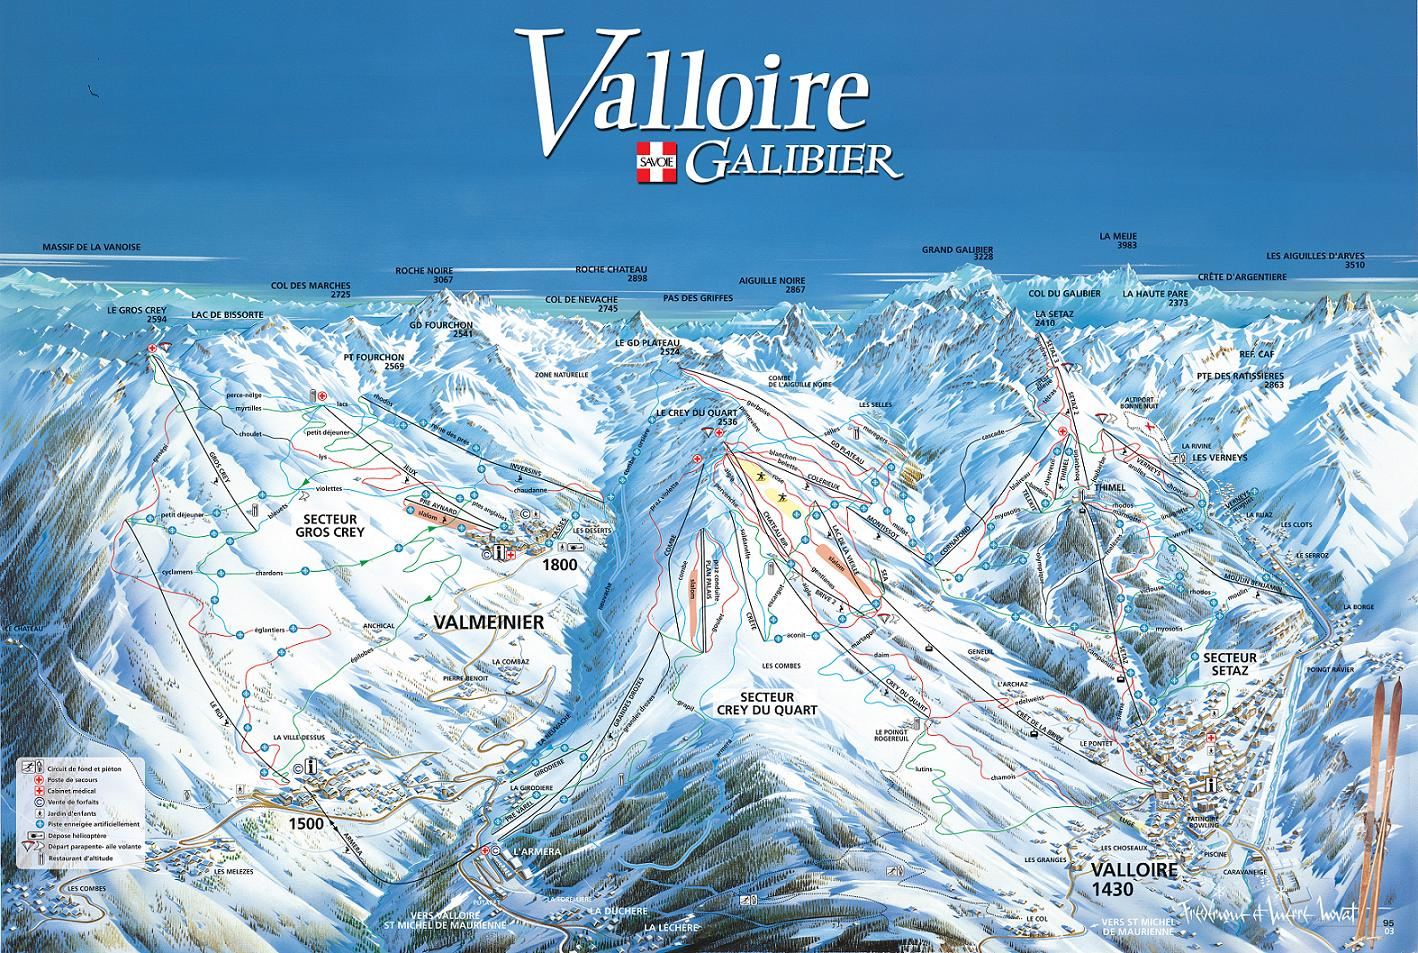 Valloire Piste Map Trails Amp Marked Ski Runs Sno